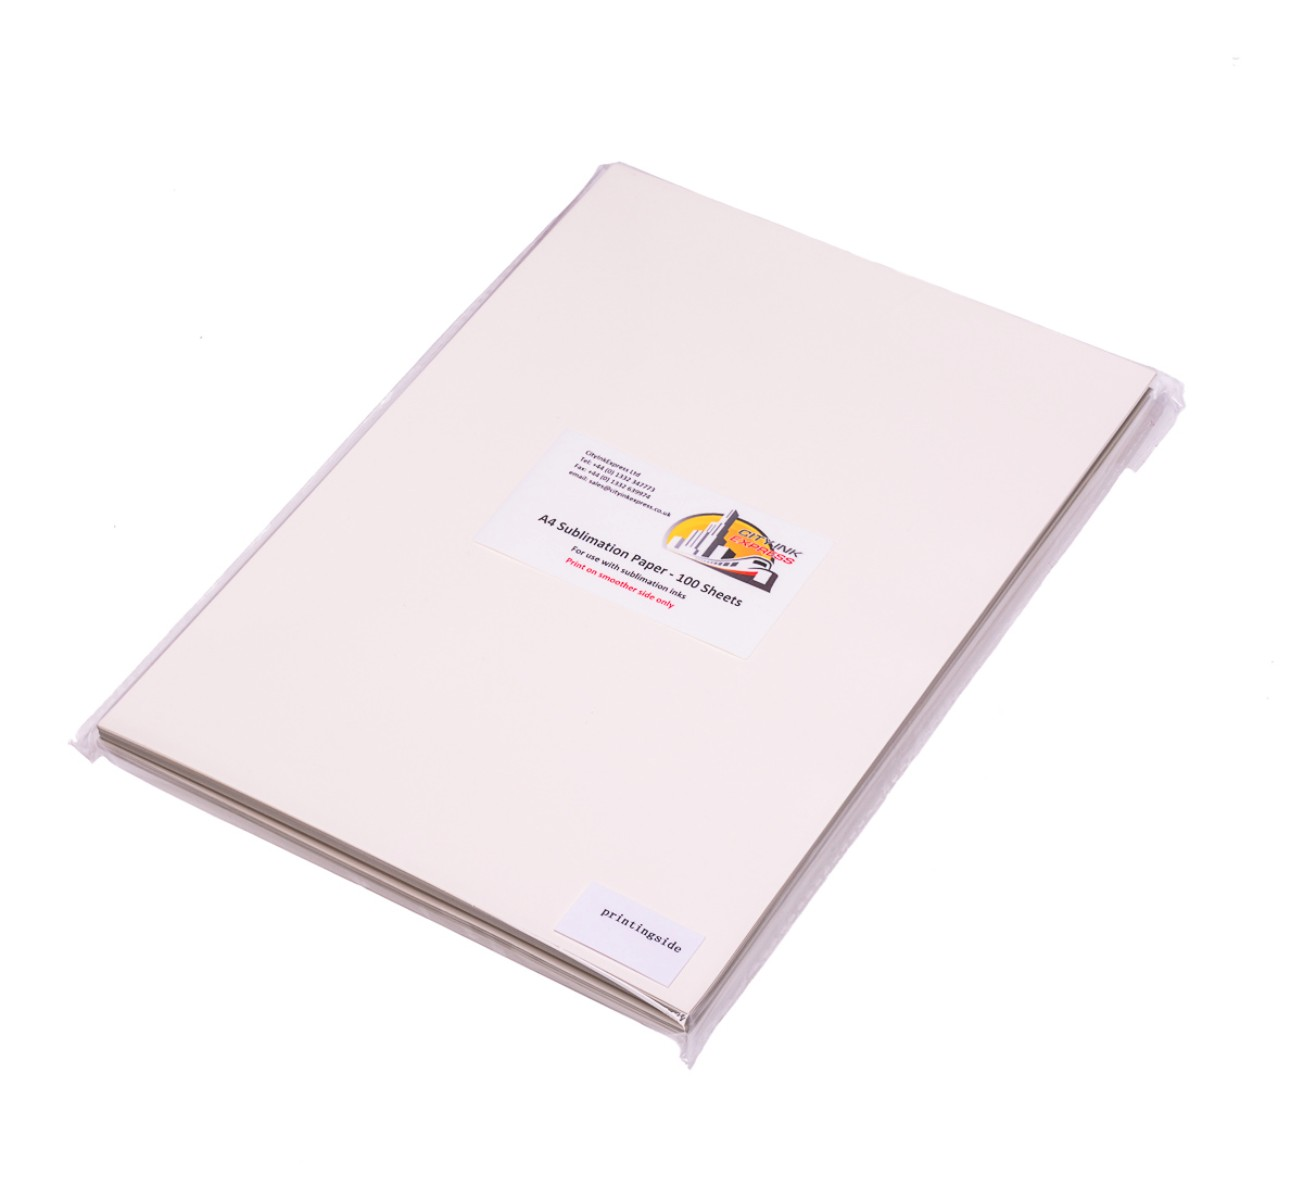 Dye Sublimation ink system - Fits Epson SX235W Printer